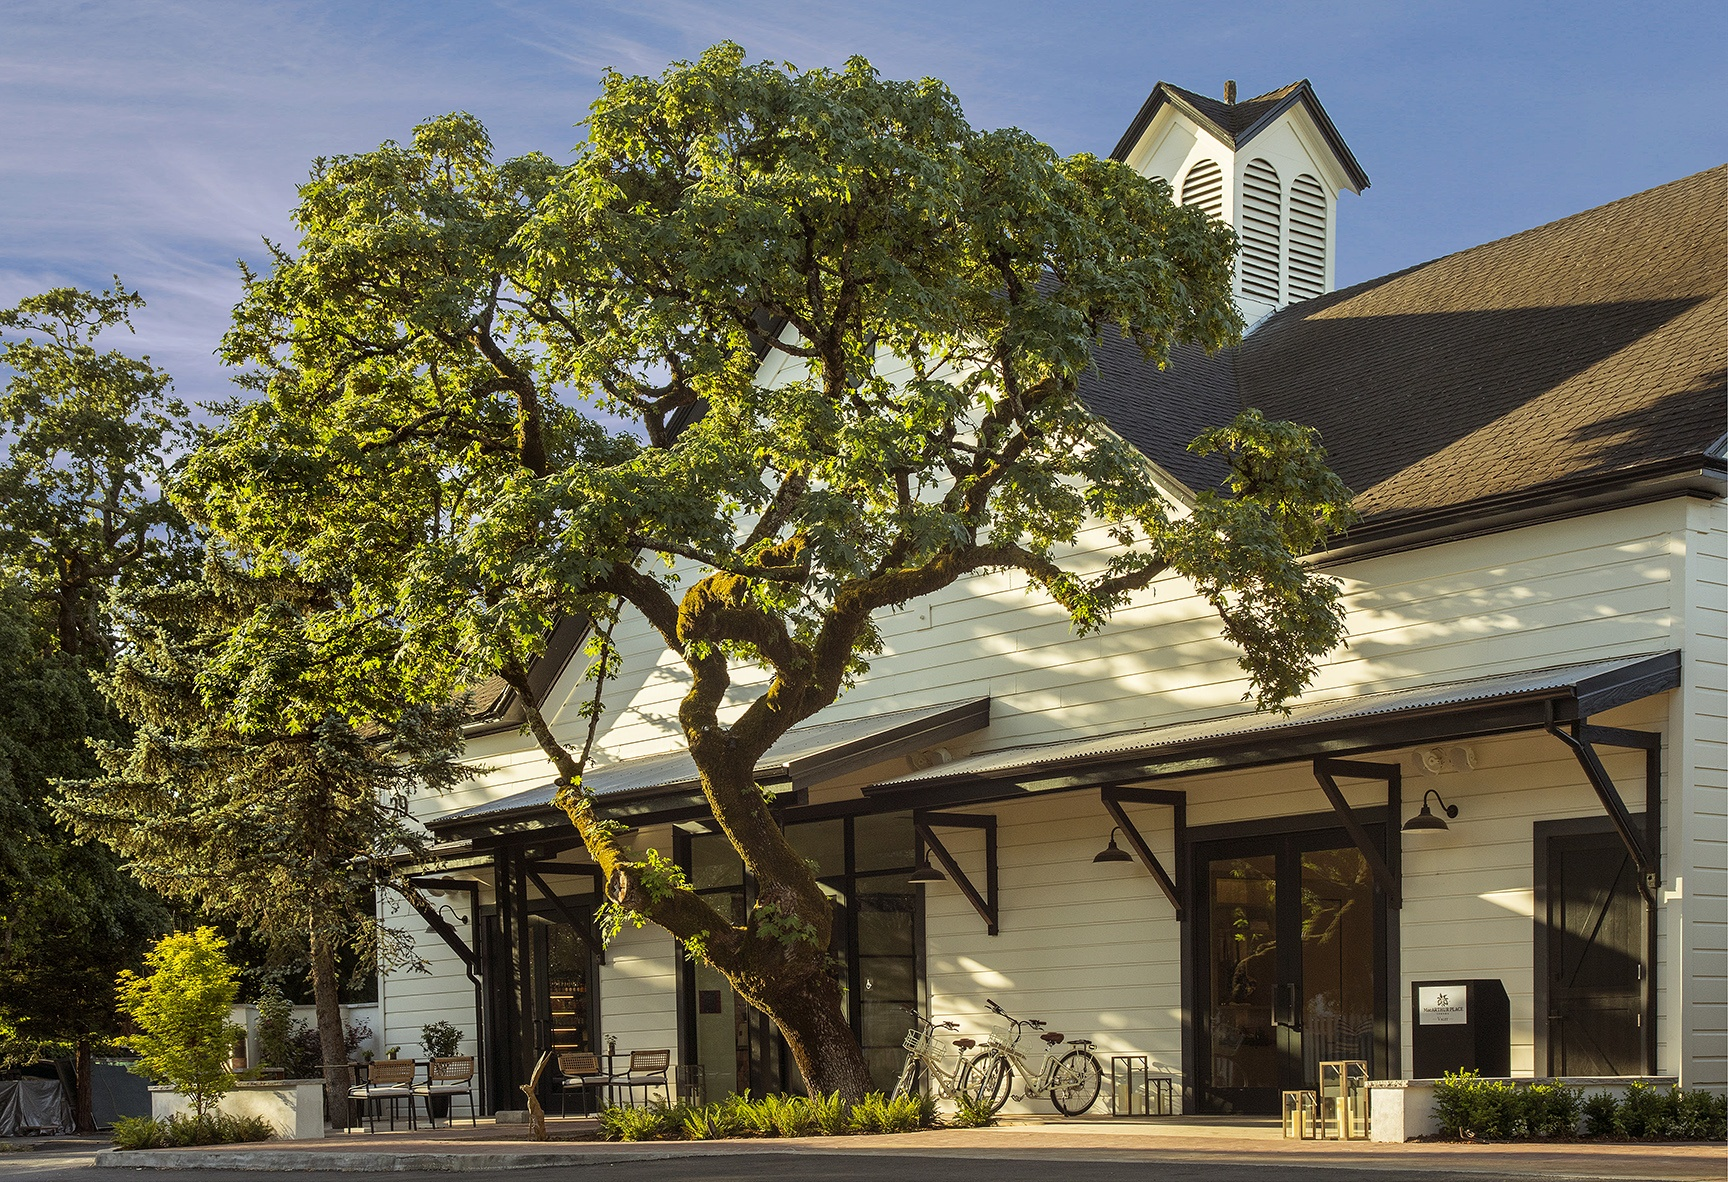 From Sonoma with Love - Win a Wine Country Getaway